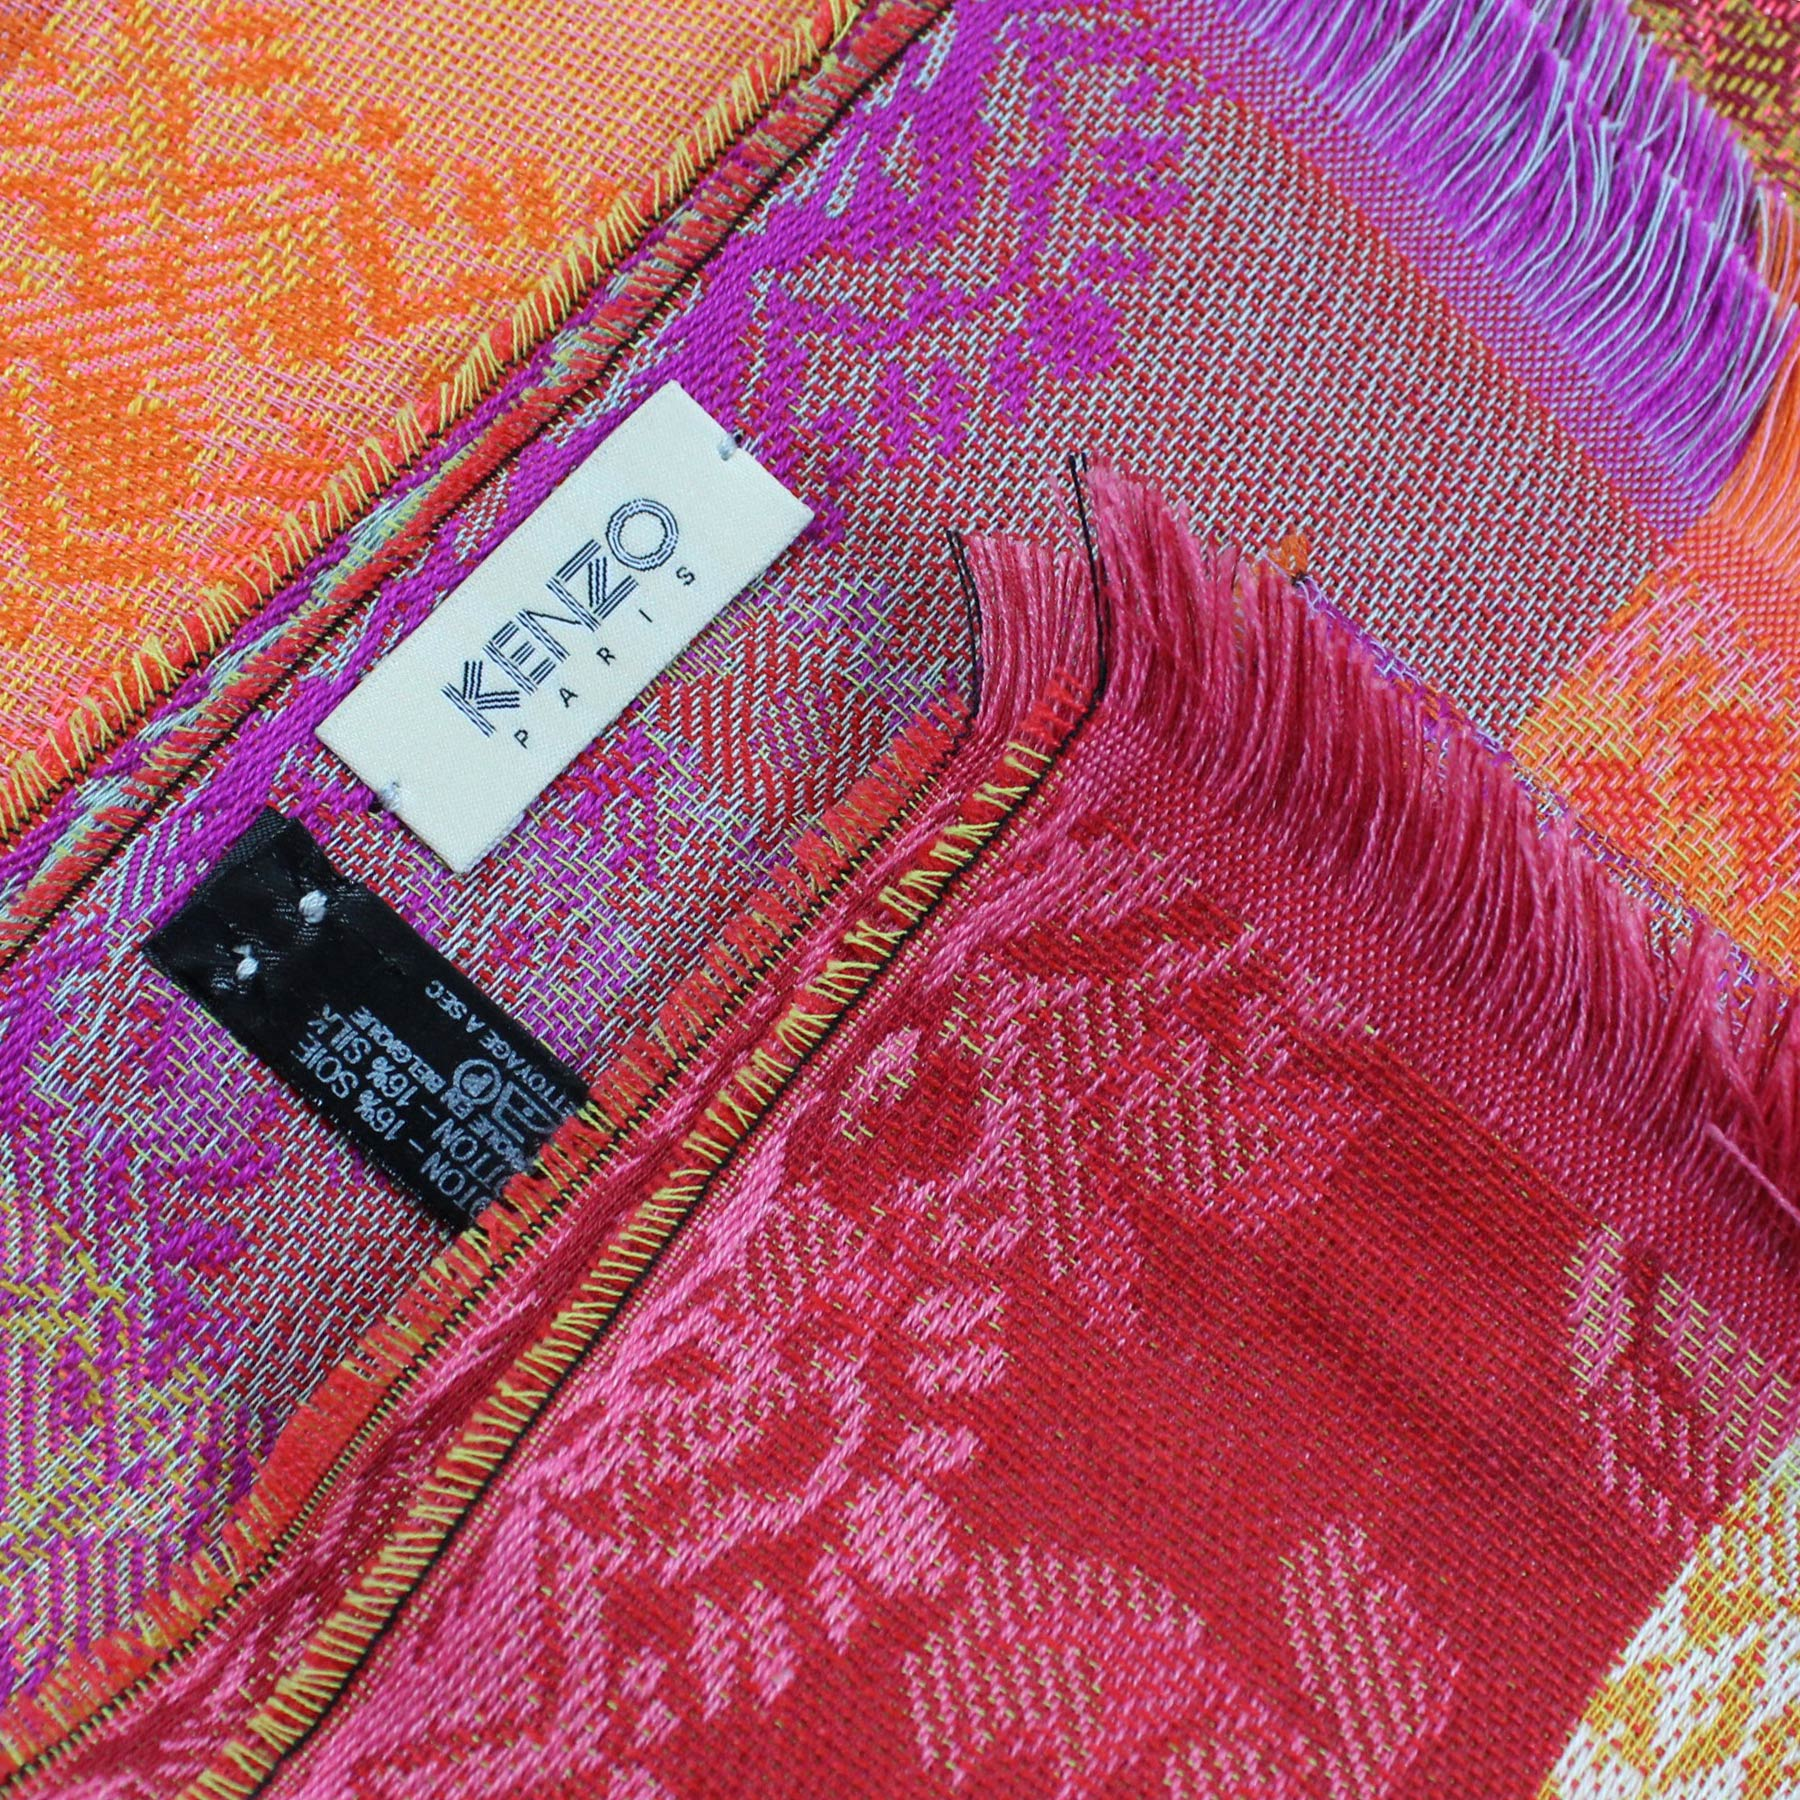 Kenzo Woman Scarf Pink Orange Floral Stripes Wool Blend Shawl